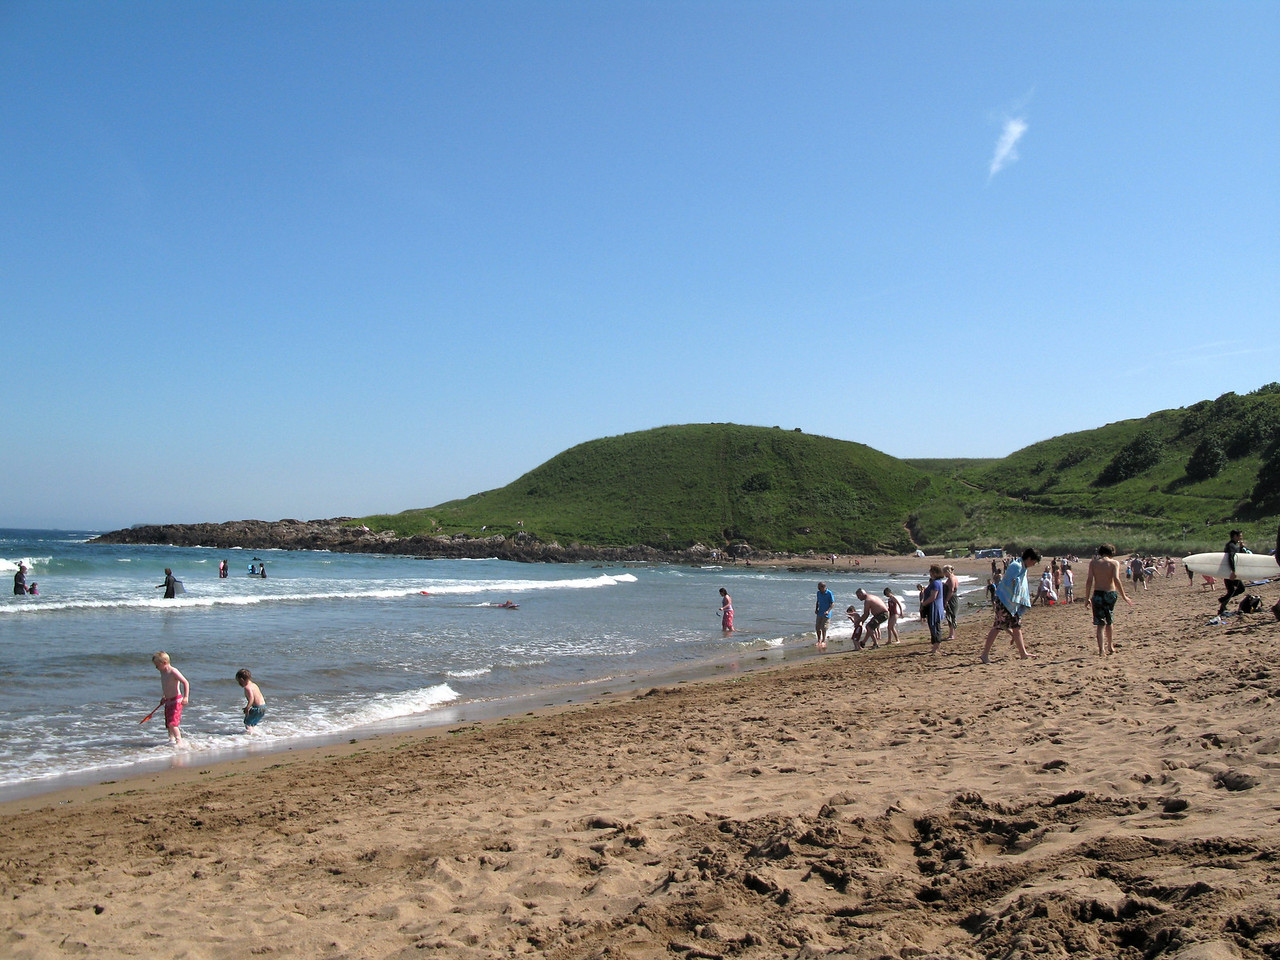 The beach was very busy